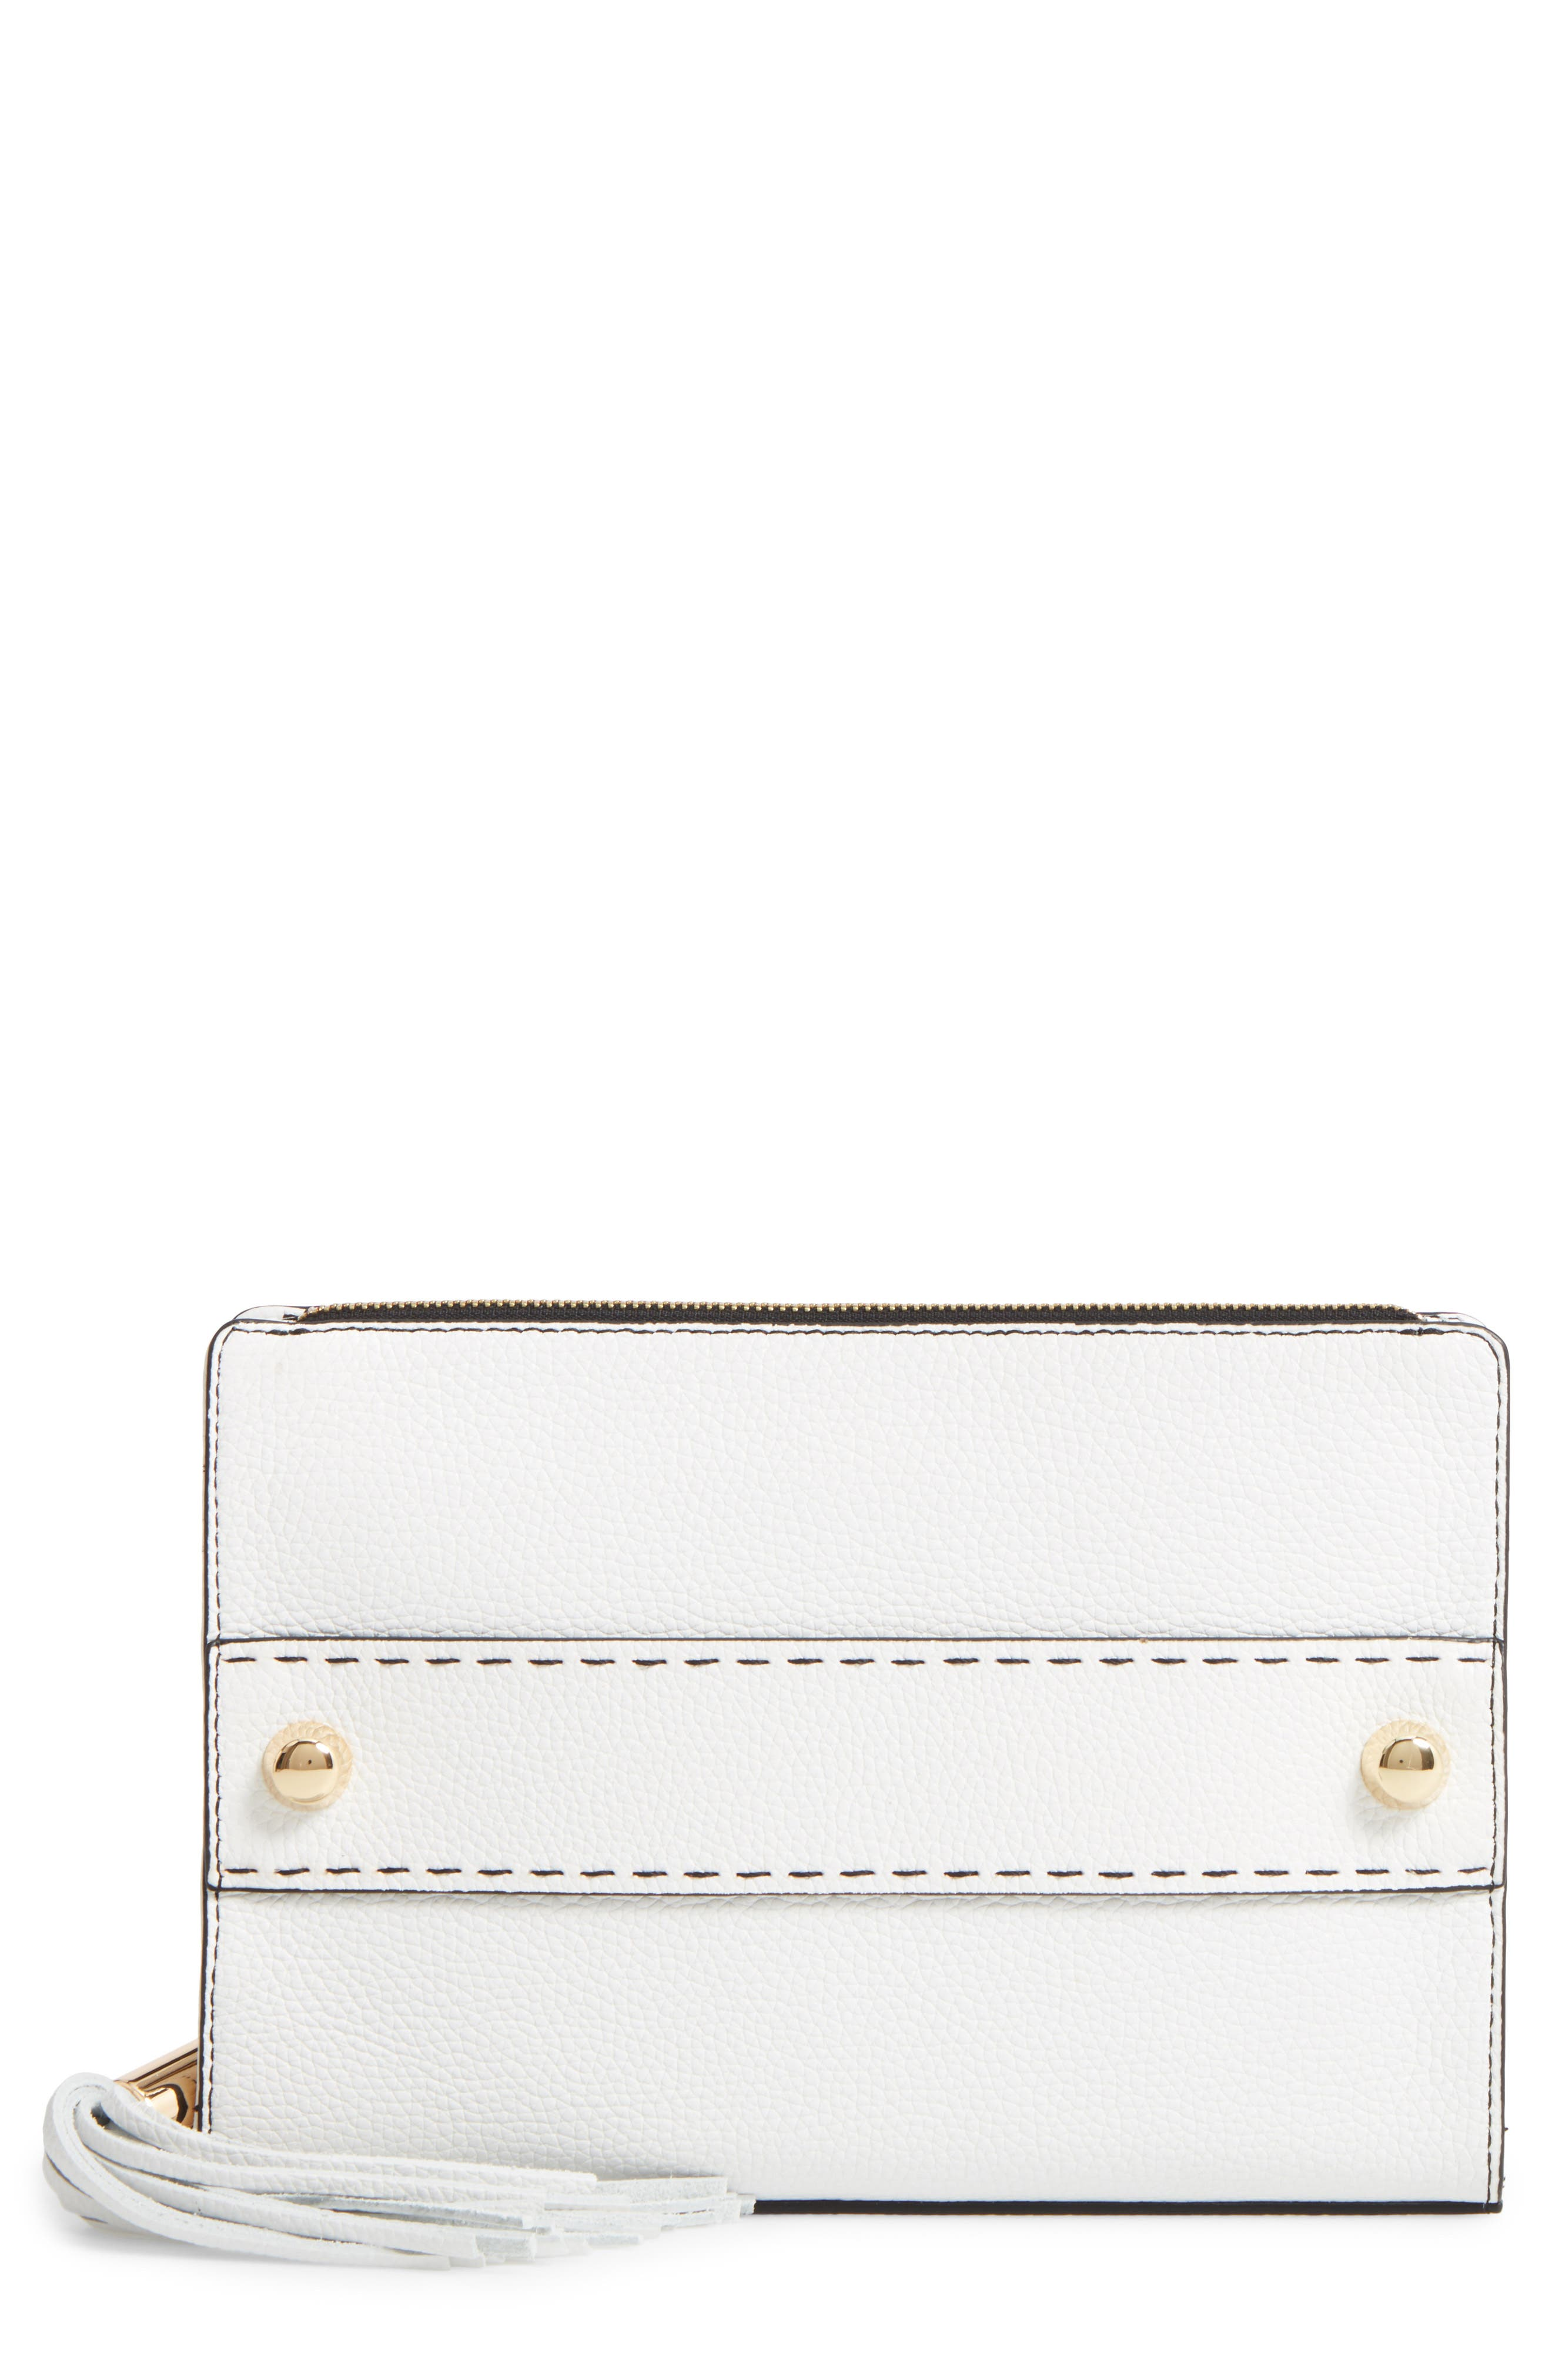 Astor Leather Clutch,                         Main,                         color, White